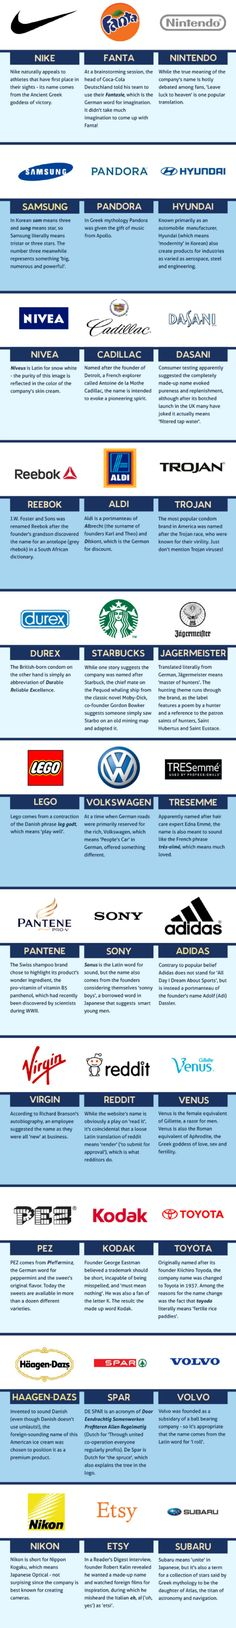 The Meaning Of Brand Names | Infographic